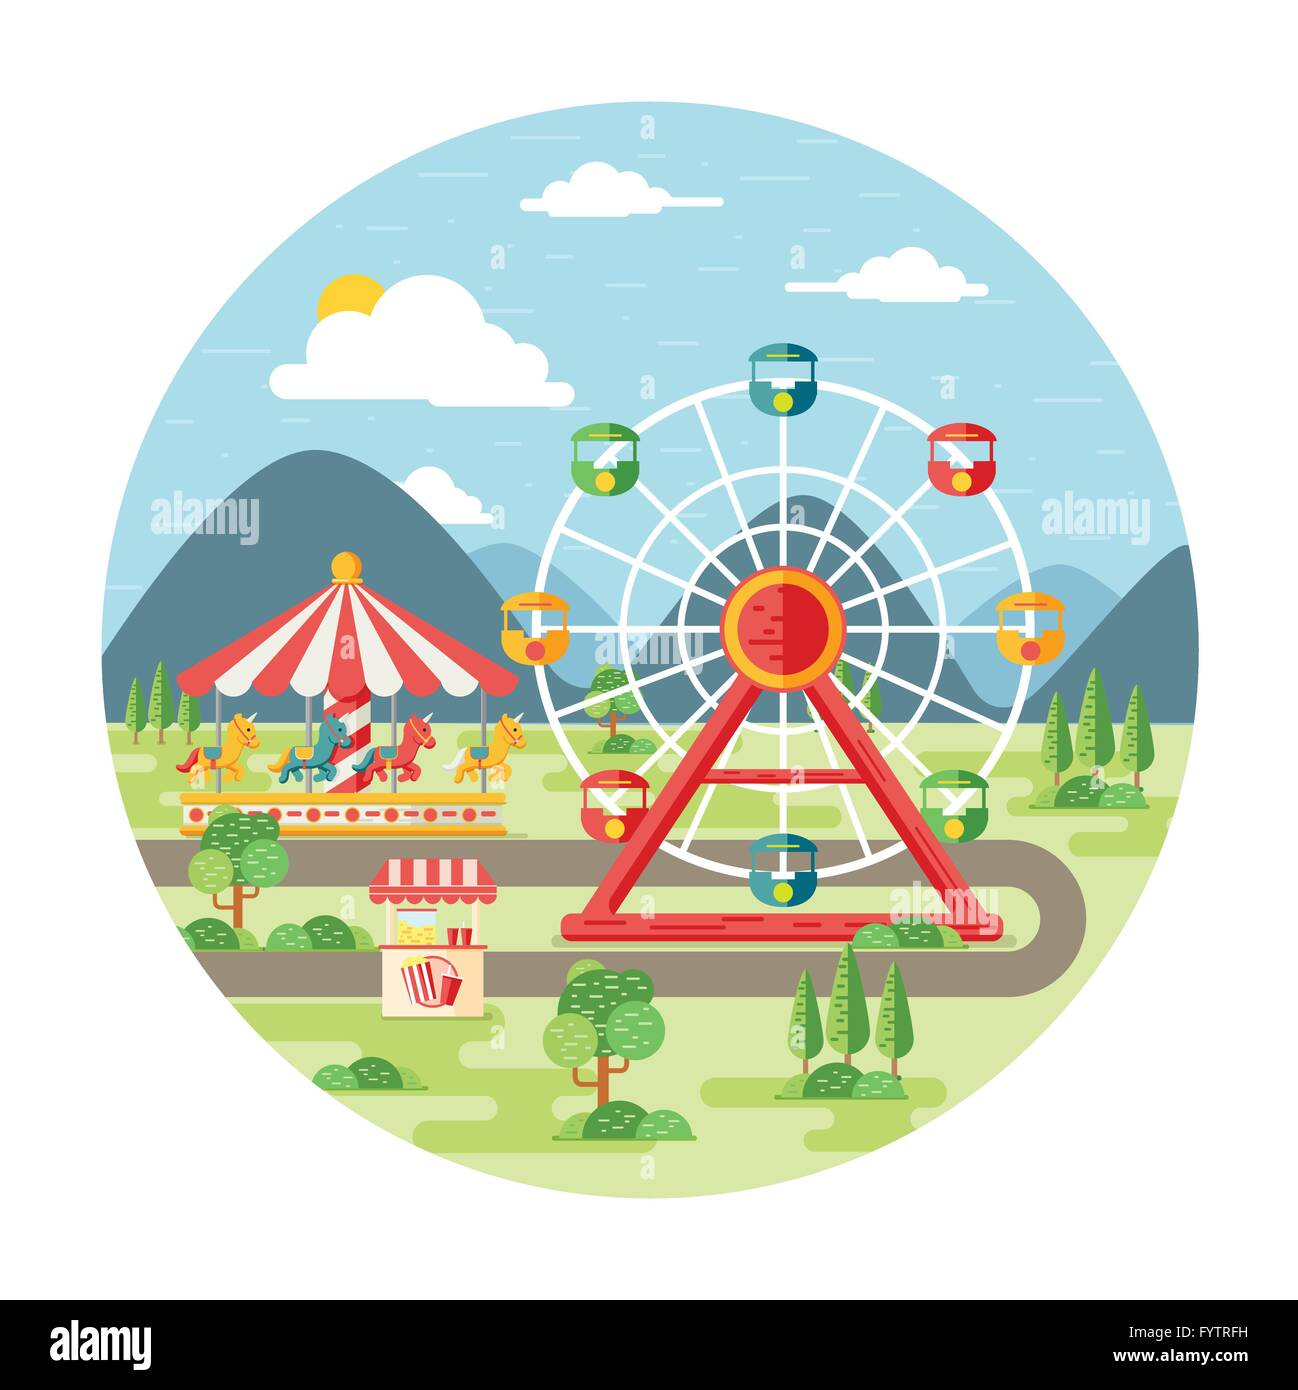 Carnival, amusement park flat illustration - Stock Vector